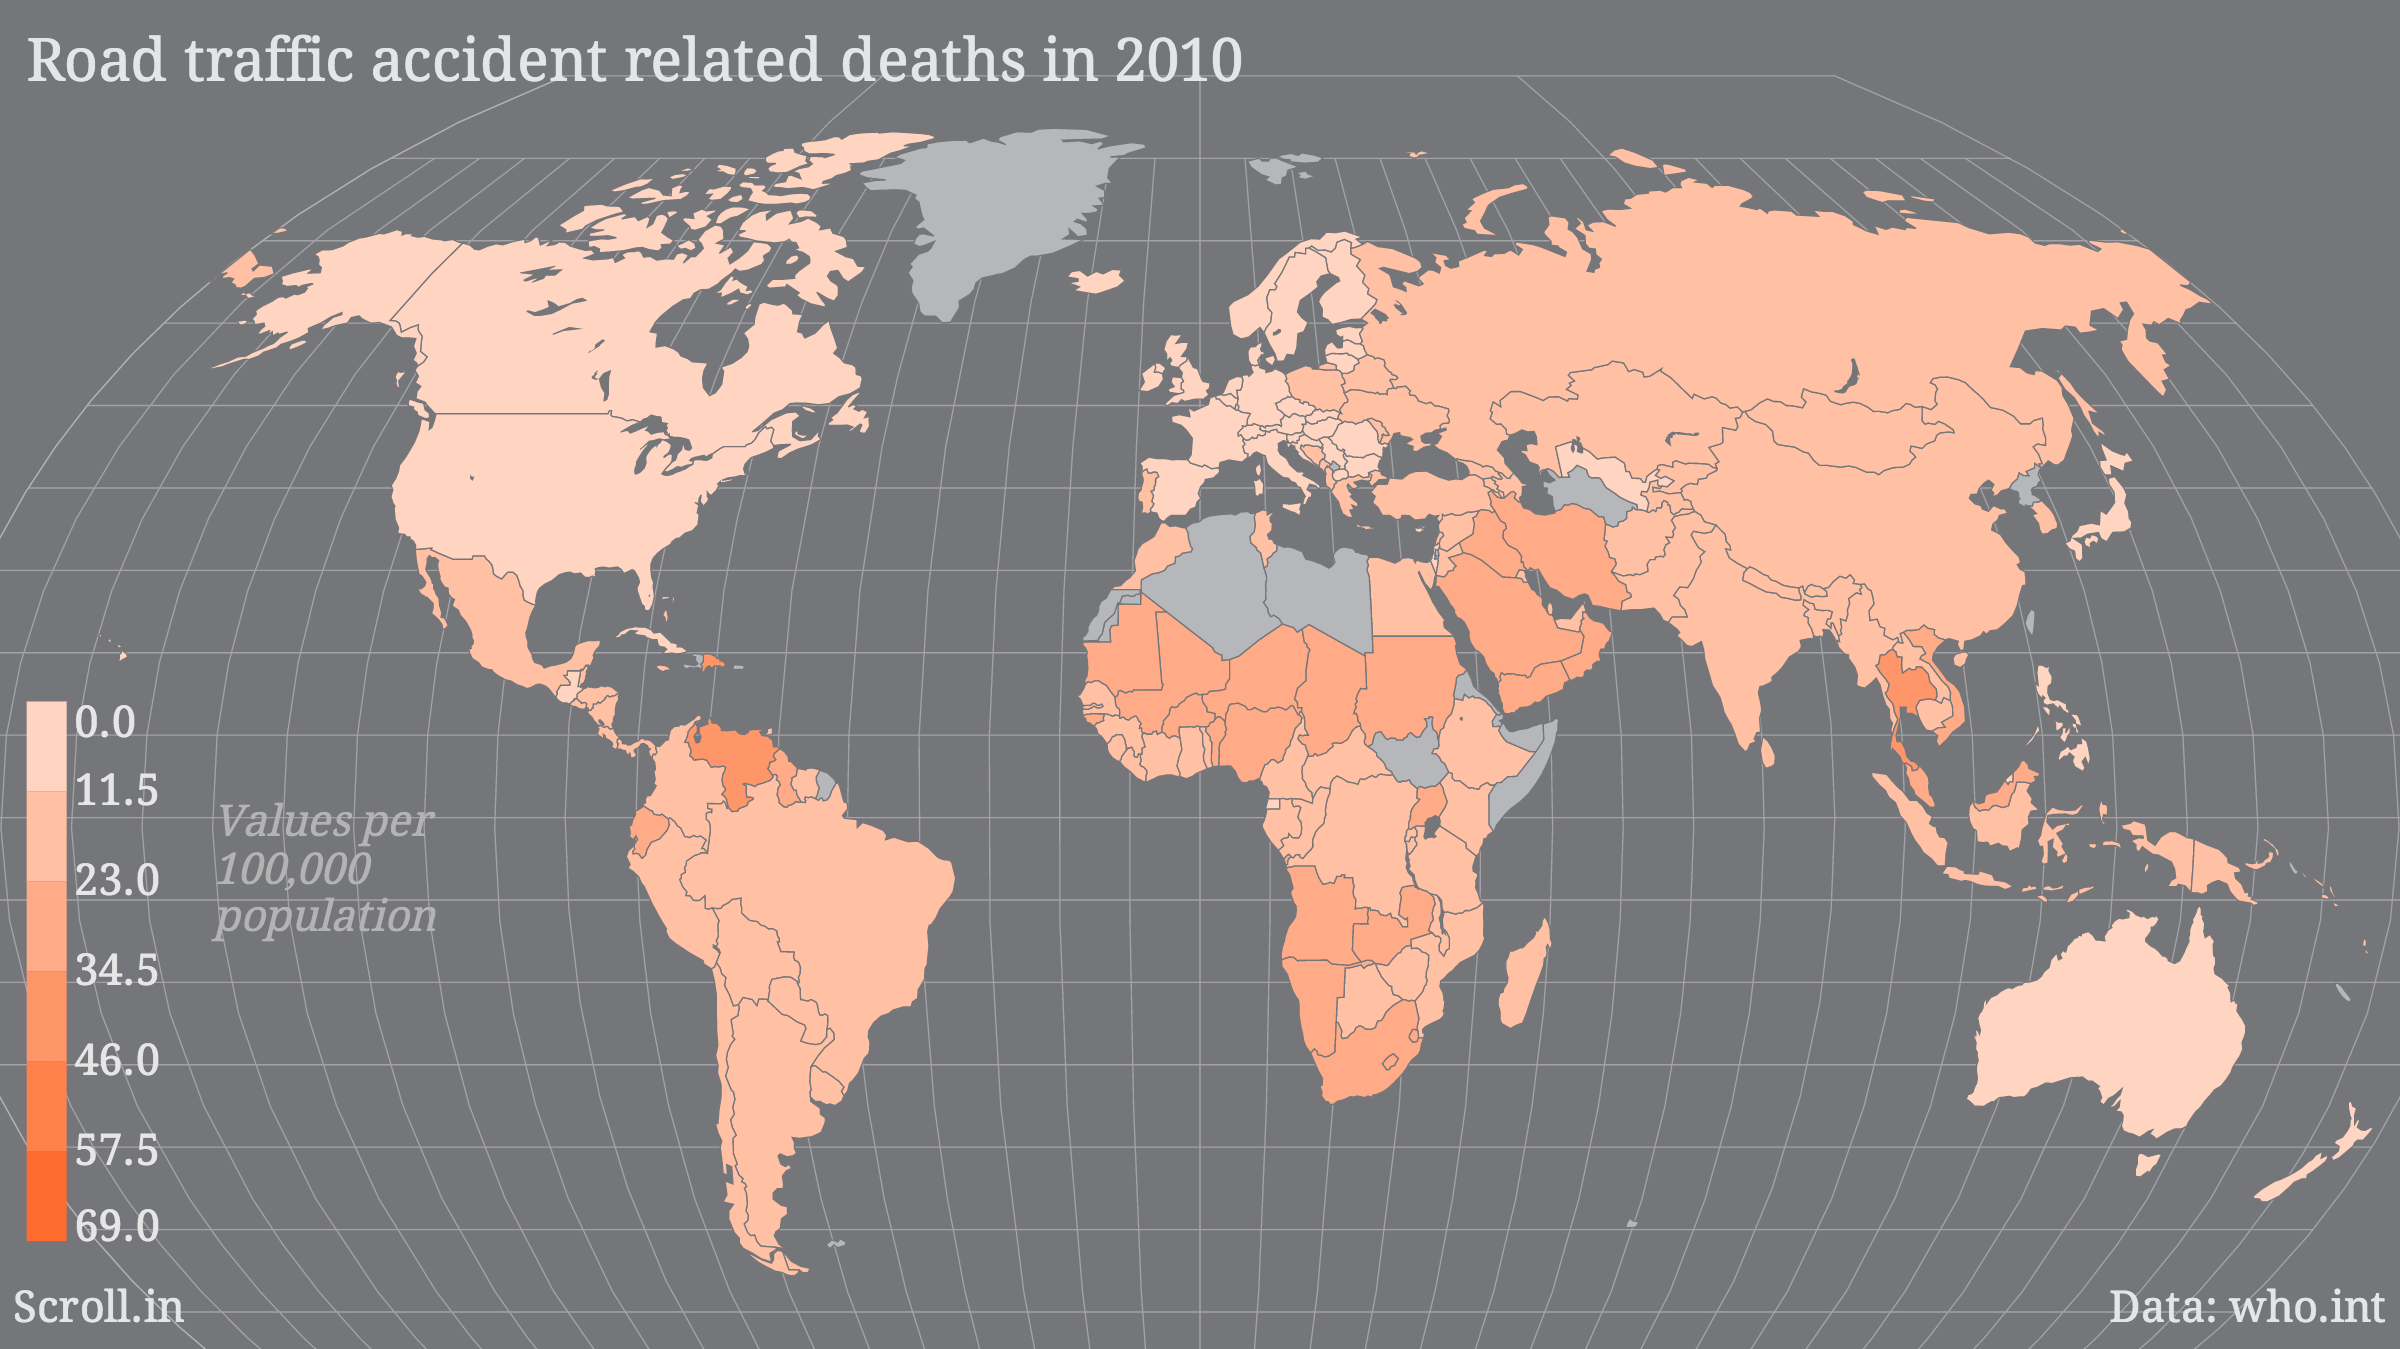 Country wise figures of road traffic related deaths in 2010.